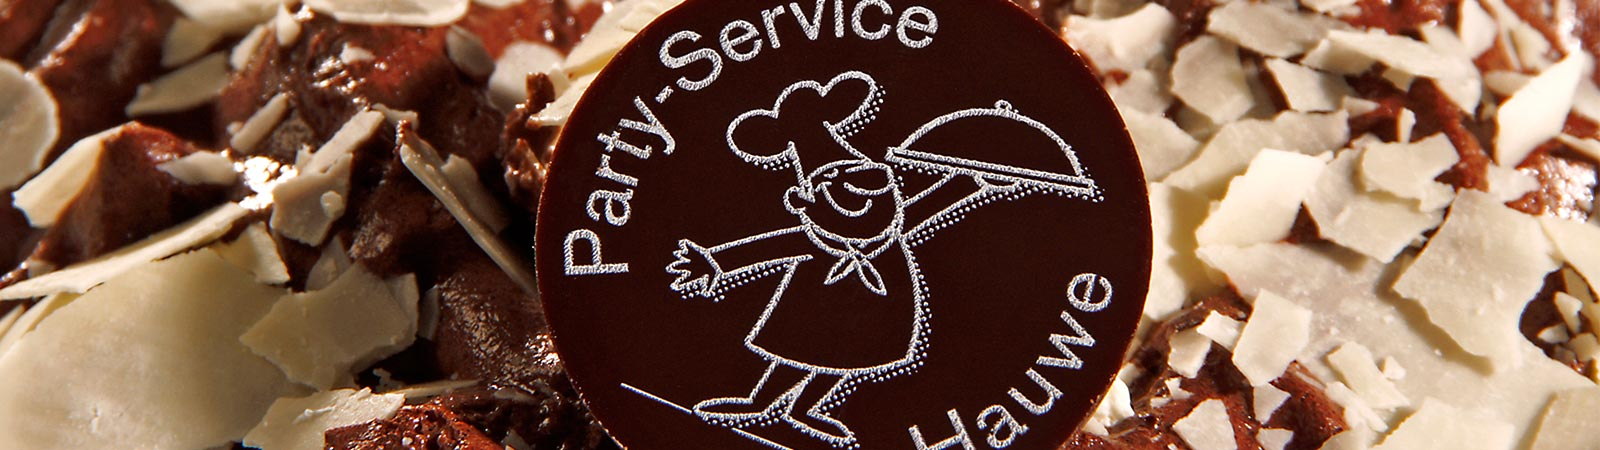 Party Service Hauwe - Desserts